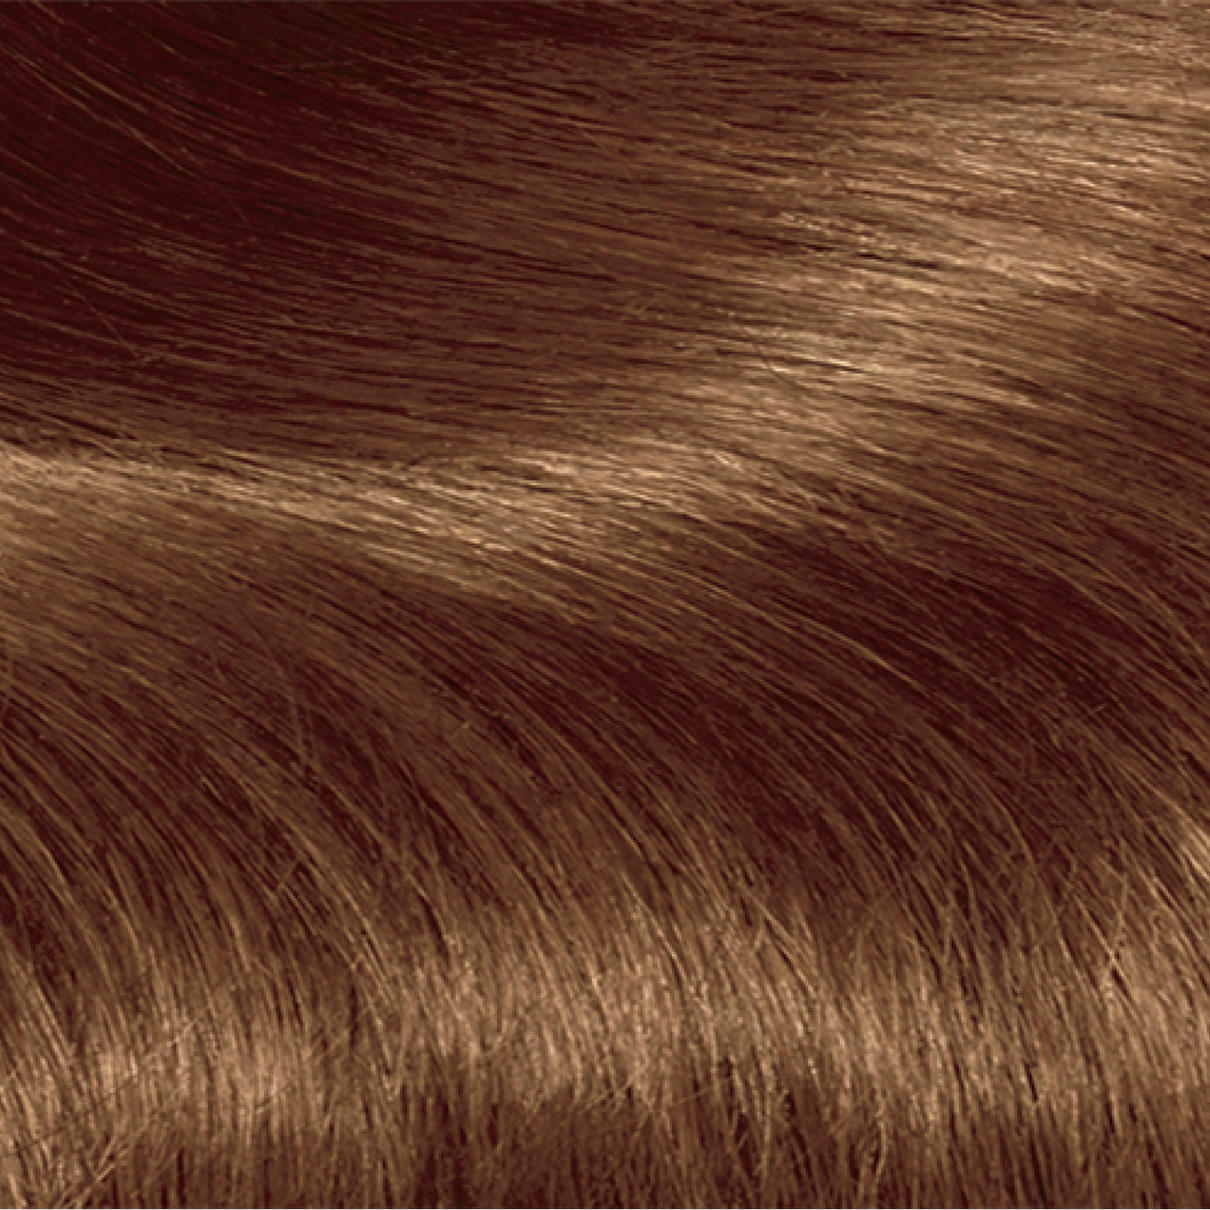 Permanent hair color clairol nice n easy 6rb light reddish brown nvjuhfo Image collections